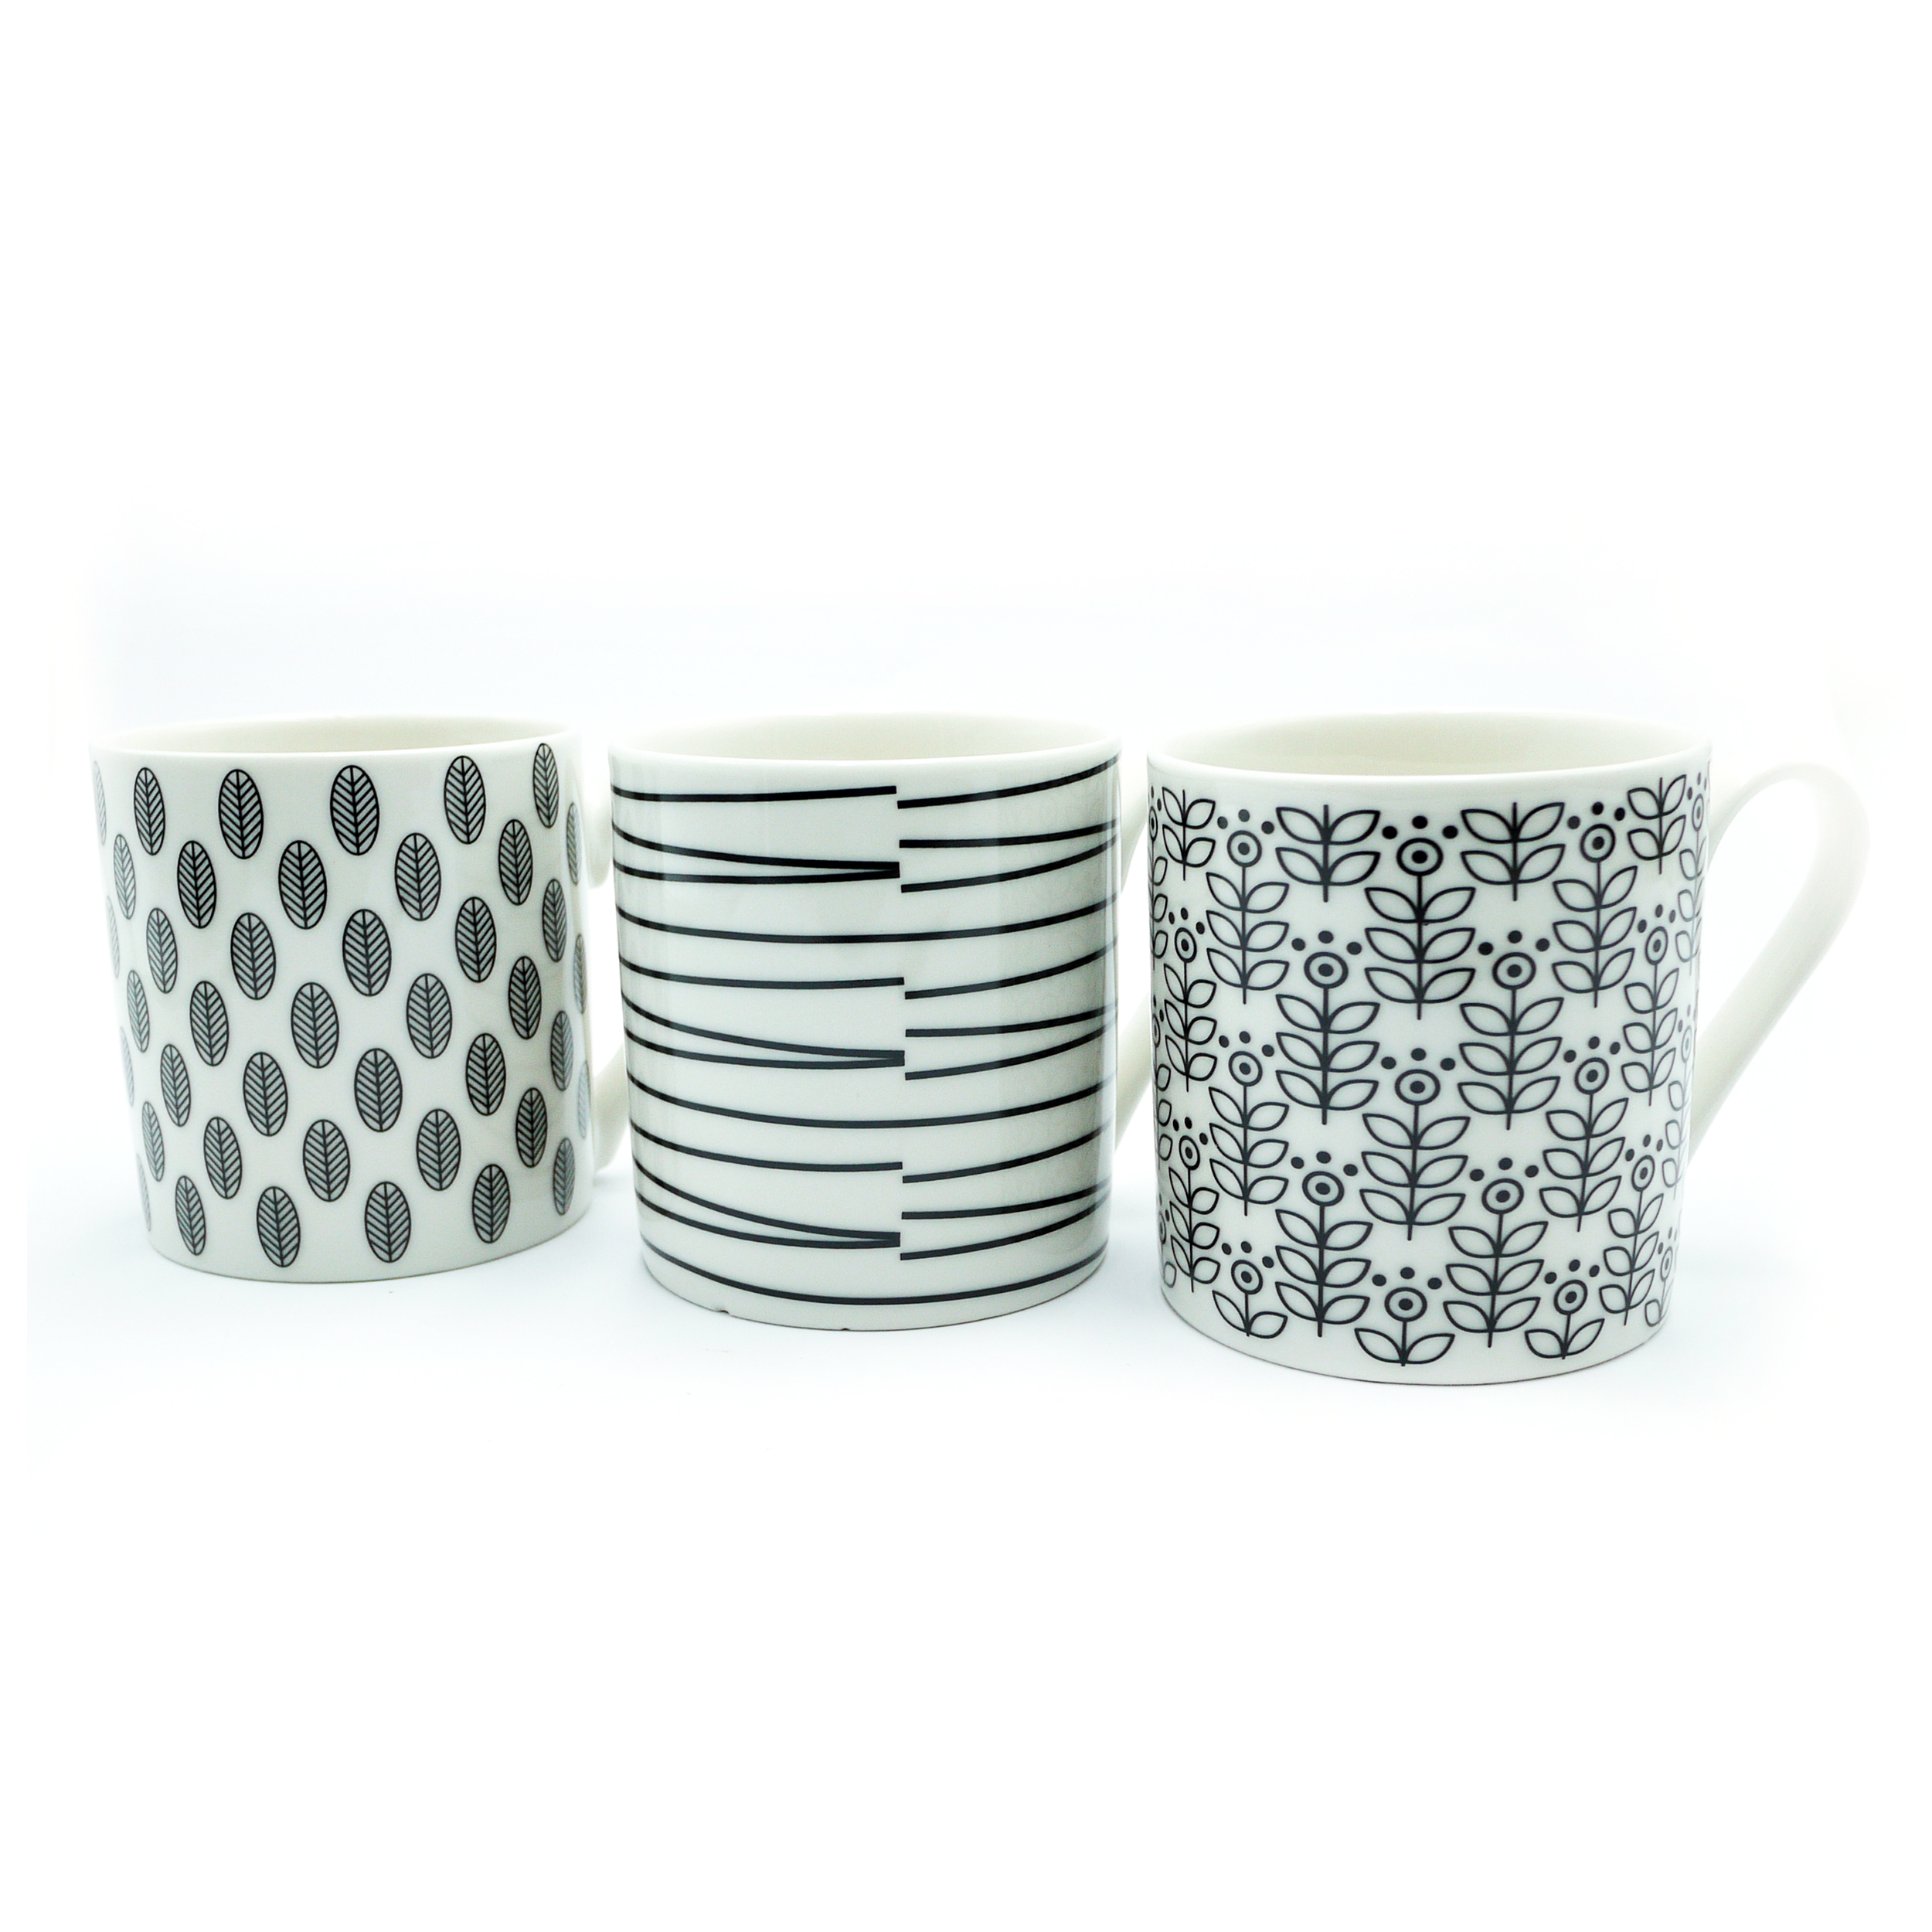 Catering Utensils Squat Mugs Patterned 12oz Black & White Ref 0399290 Pack 12